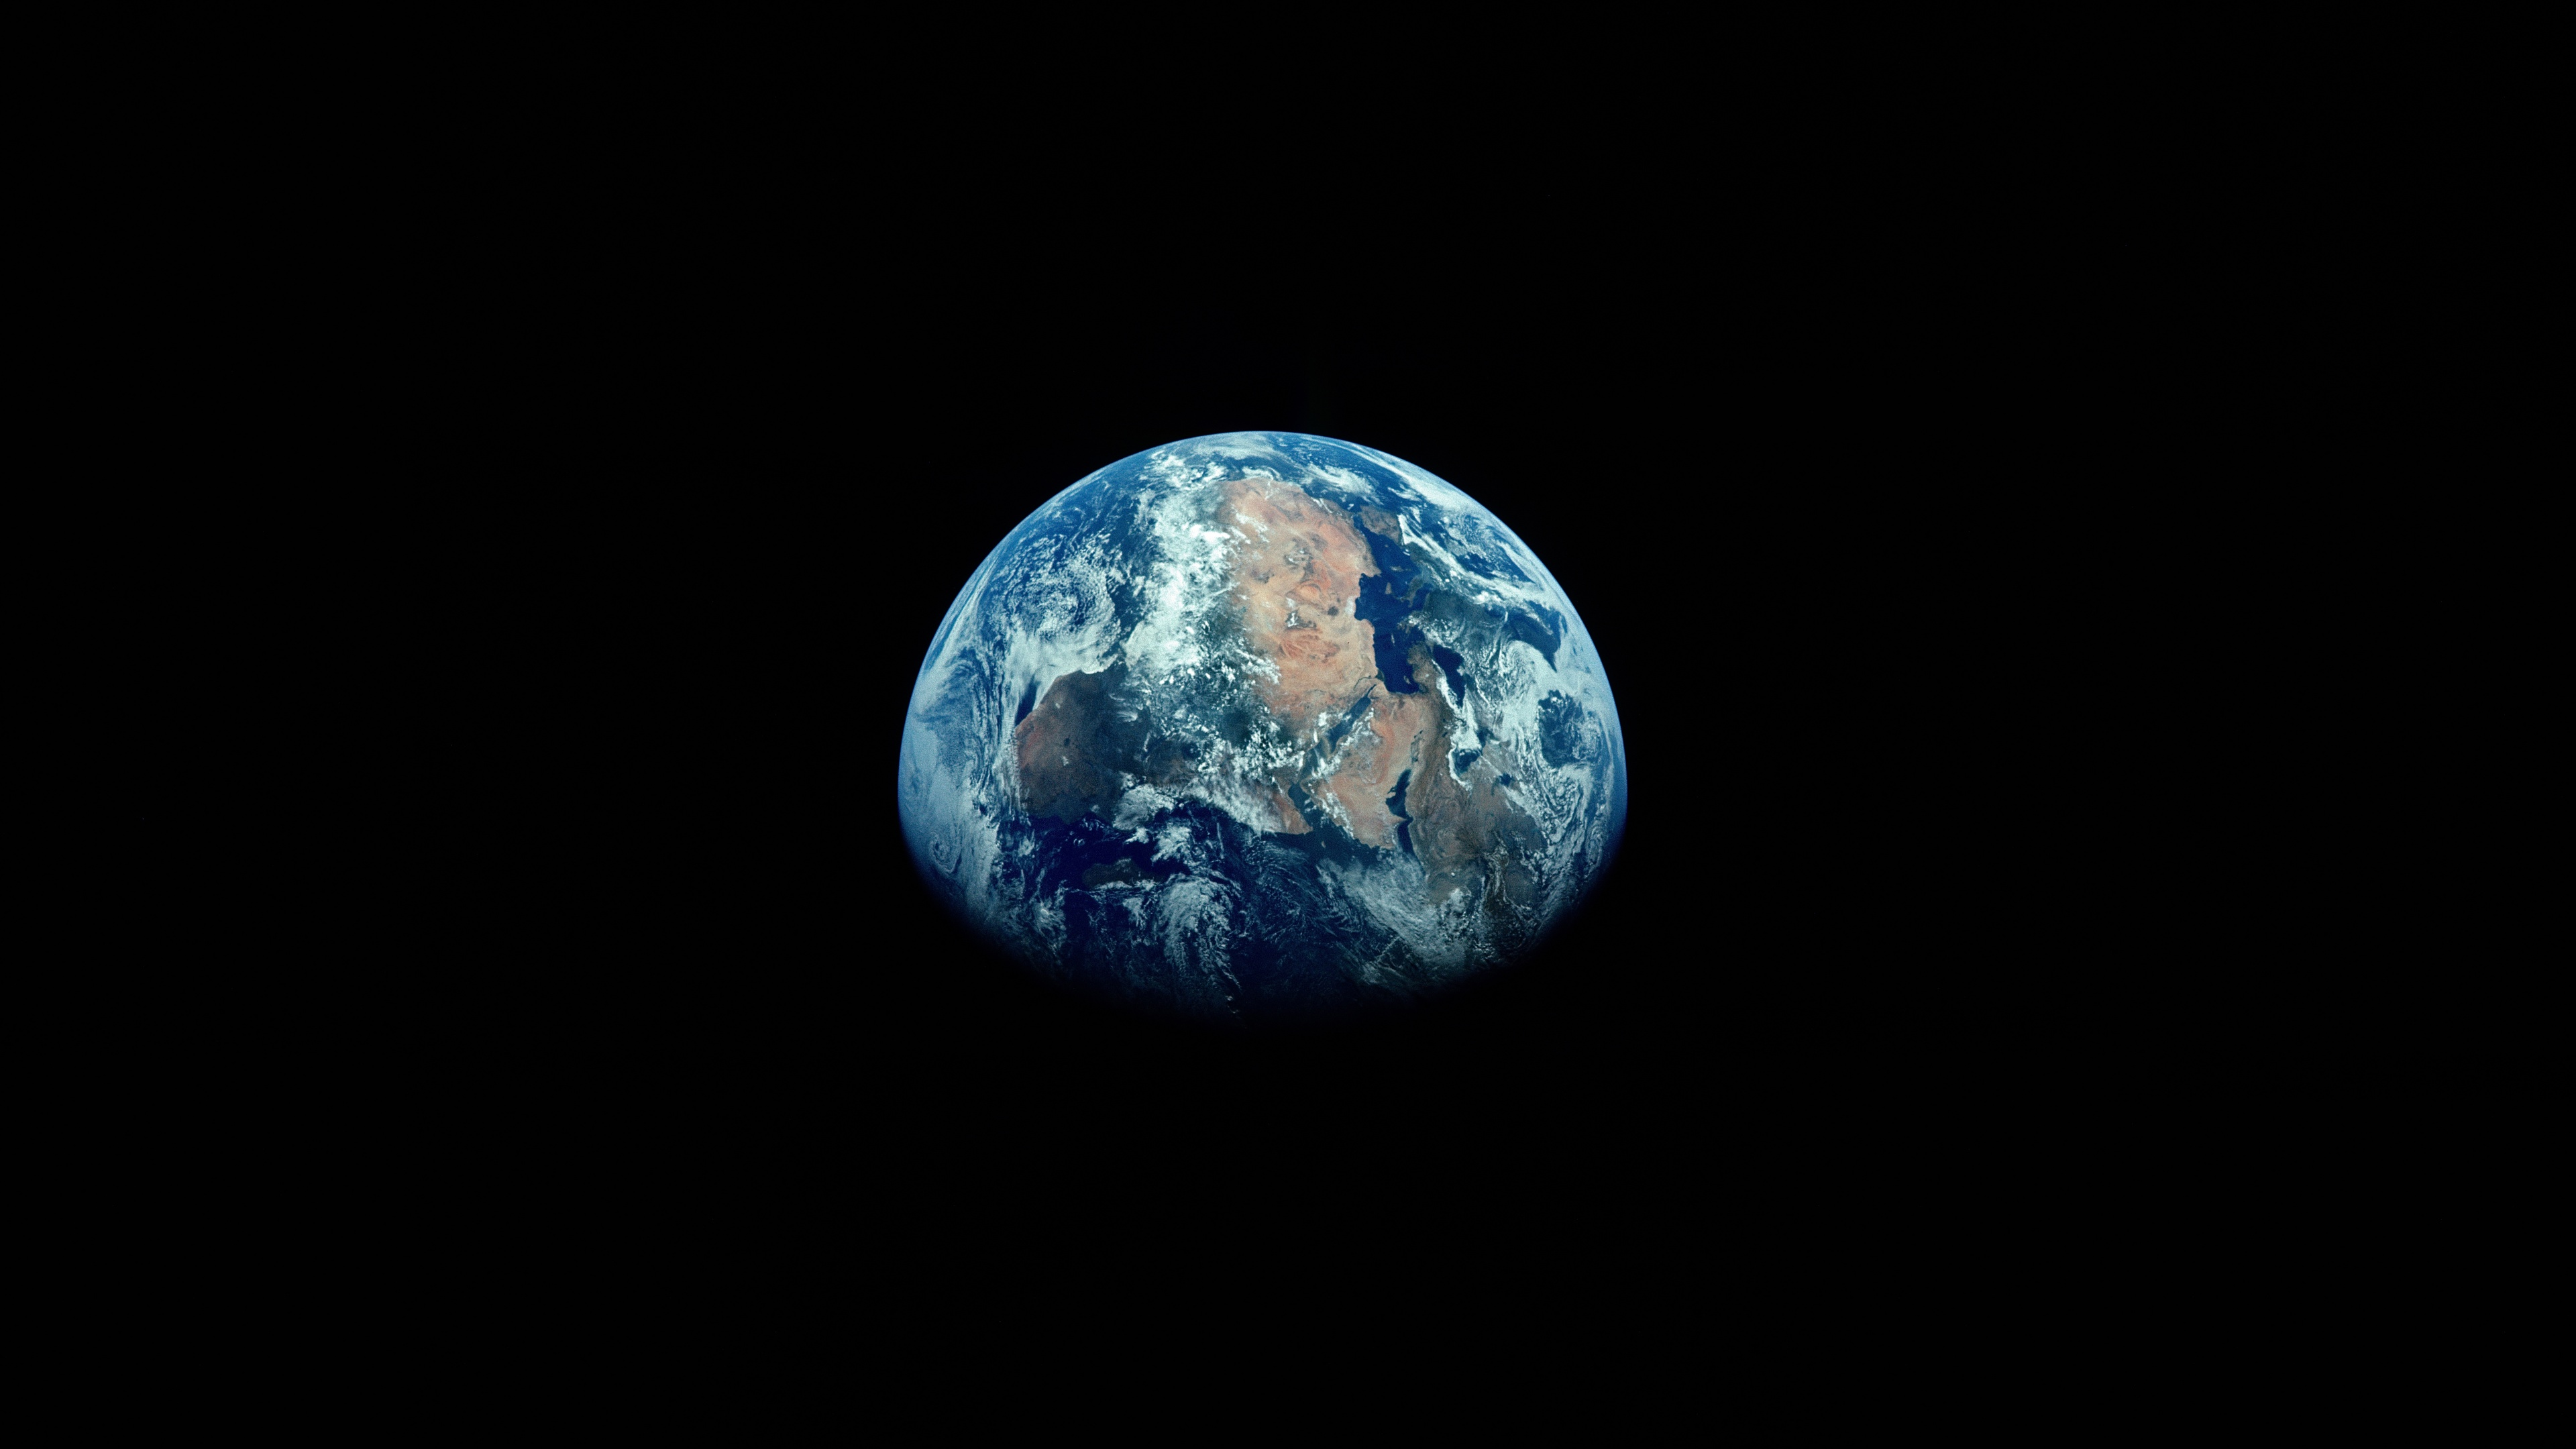 Earth 4k Wallpaper Space Black Background Atmosphere Blue Planet 5k 8k Space 2152